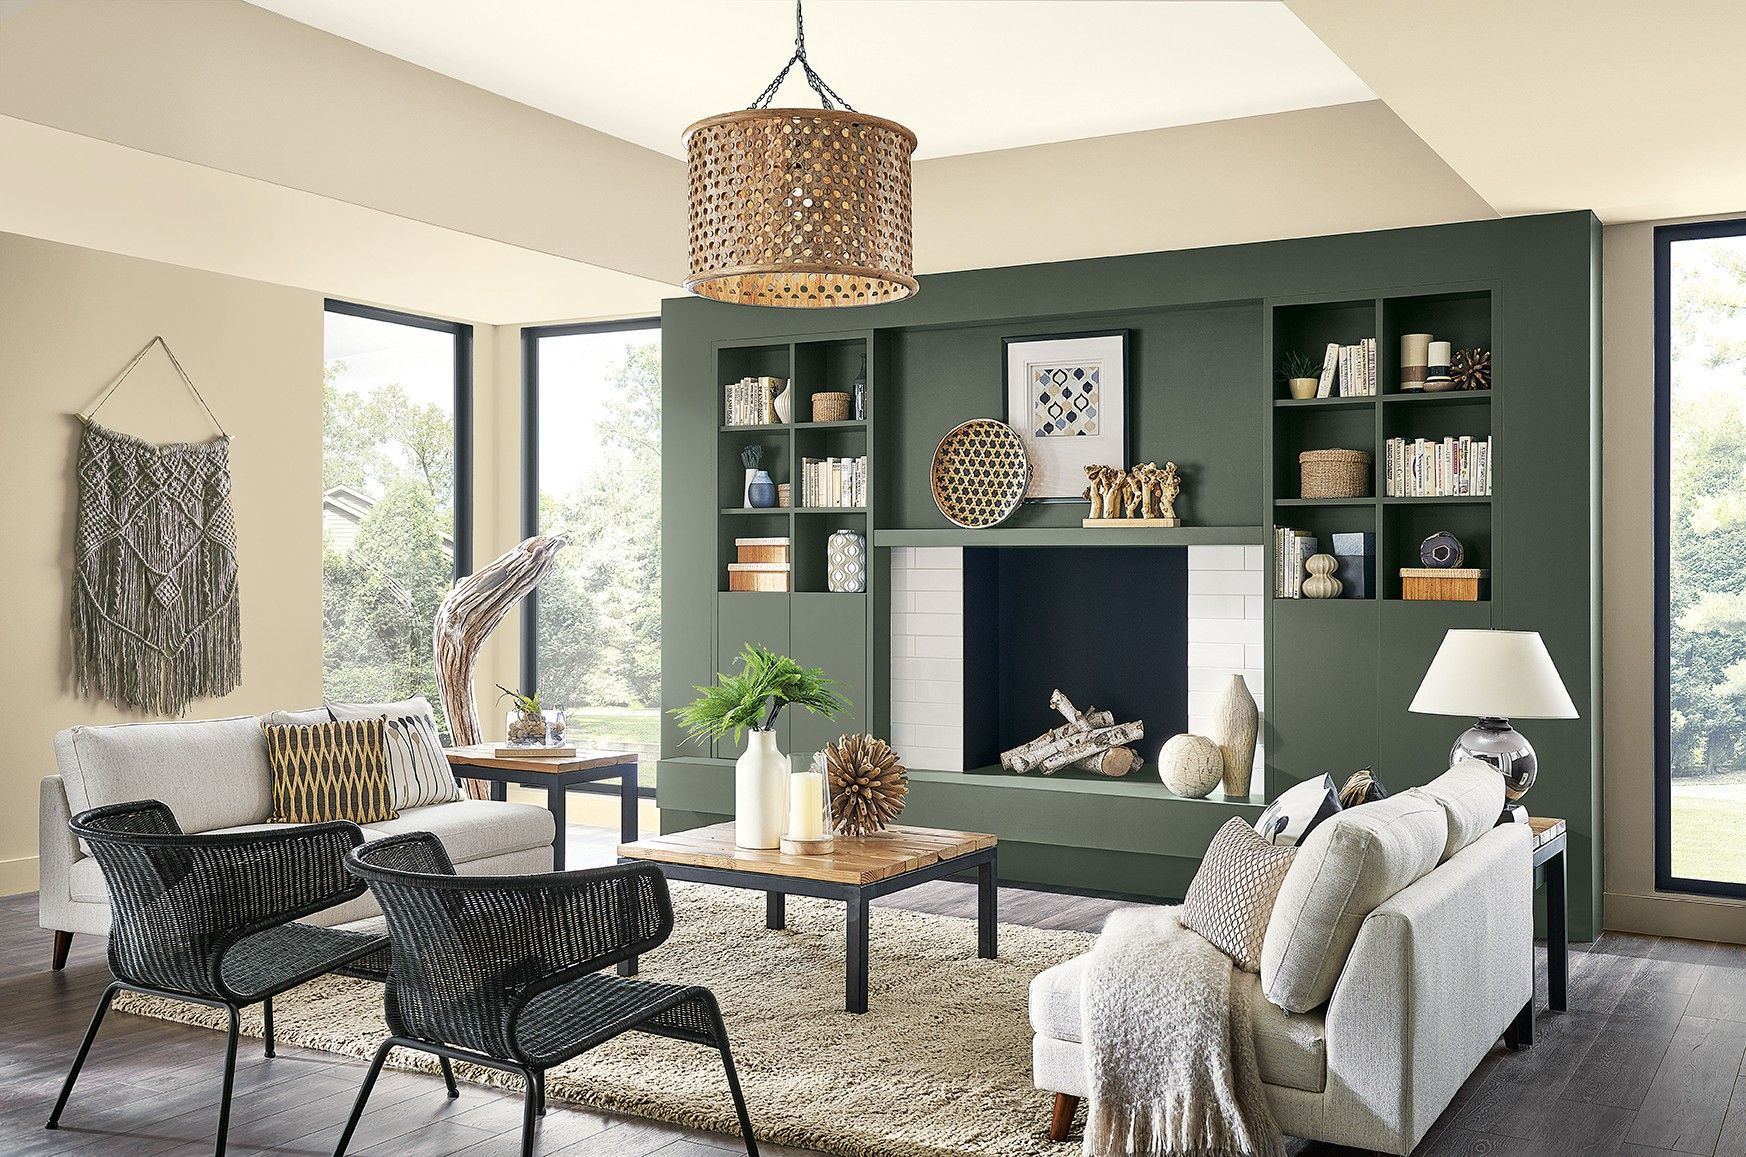 pewter green for vanity living room color inspiration on living room color inspiration id=24462